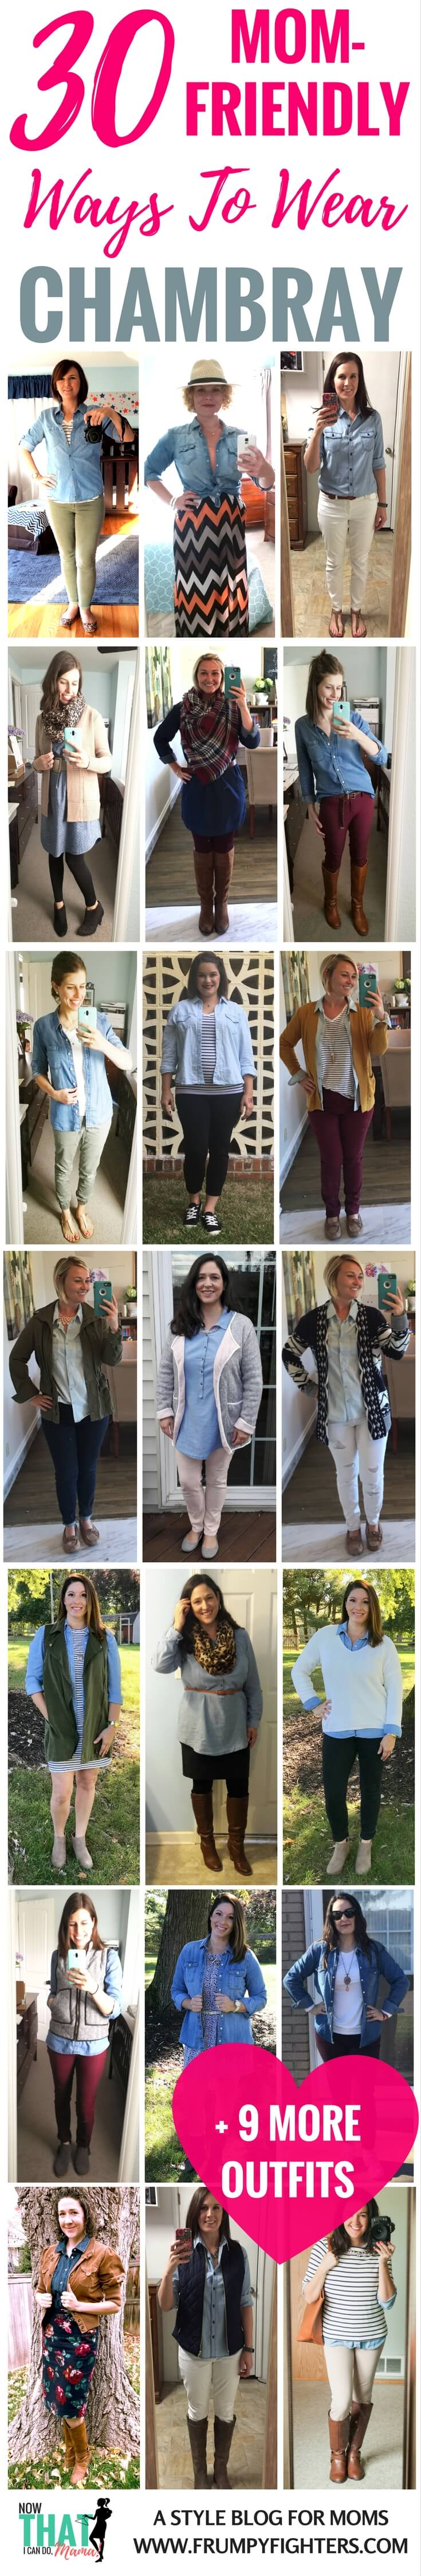 Tons of outfit ideas and ways to wear my chambray button-down shirt or denim dress... on lots of different mom models! Love these cute and chic ideas that are #modest and totally wearable. Whether cozy at home with the kids or running errands, these outfits are so easy to copy. Going to pin to reference in the morning! #momlife #fashion #style #clothes #fall #winter #spring #summer #outfits #chambray